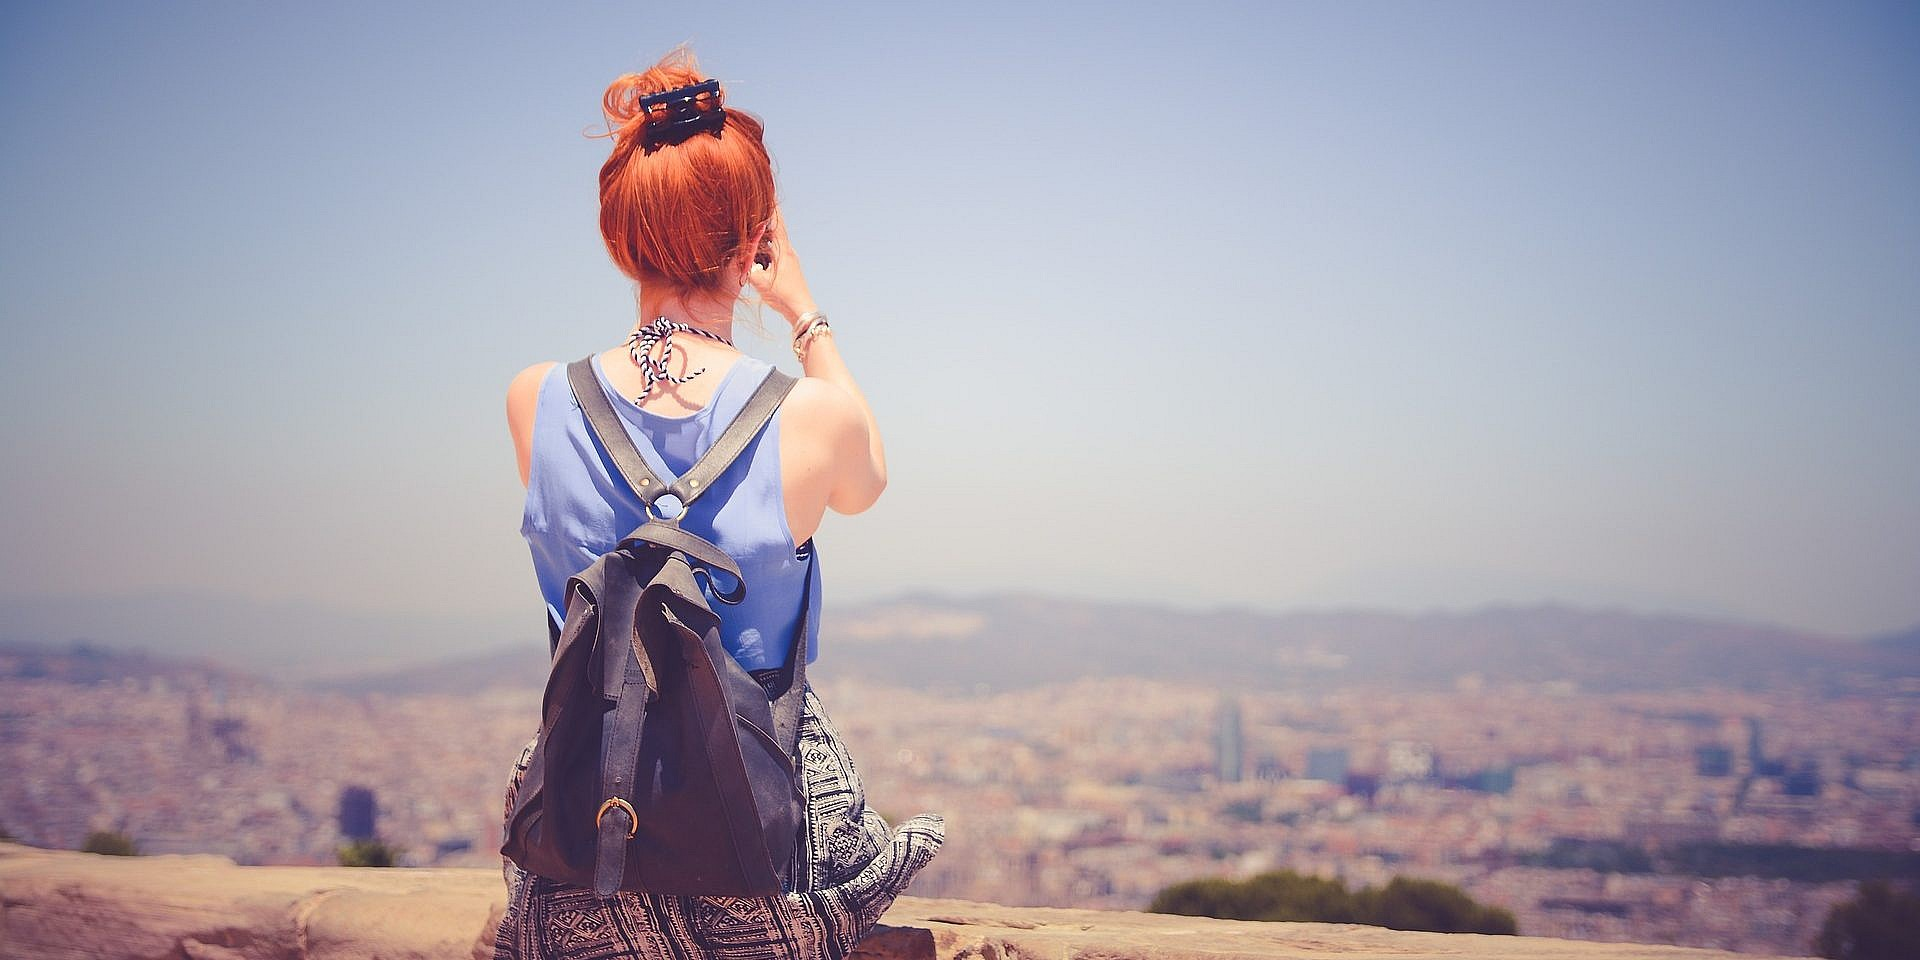 Why A Working Holiday Could Be Better Than Going to University